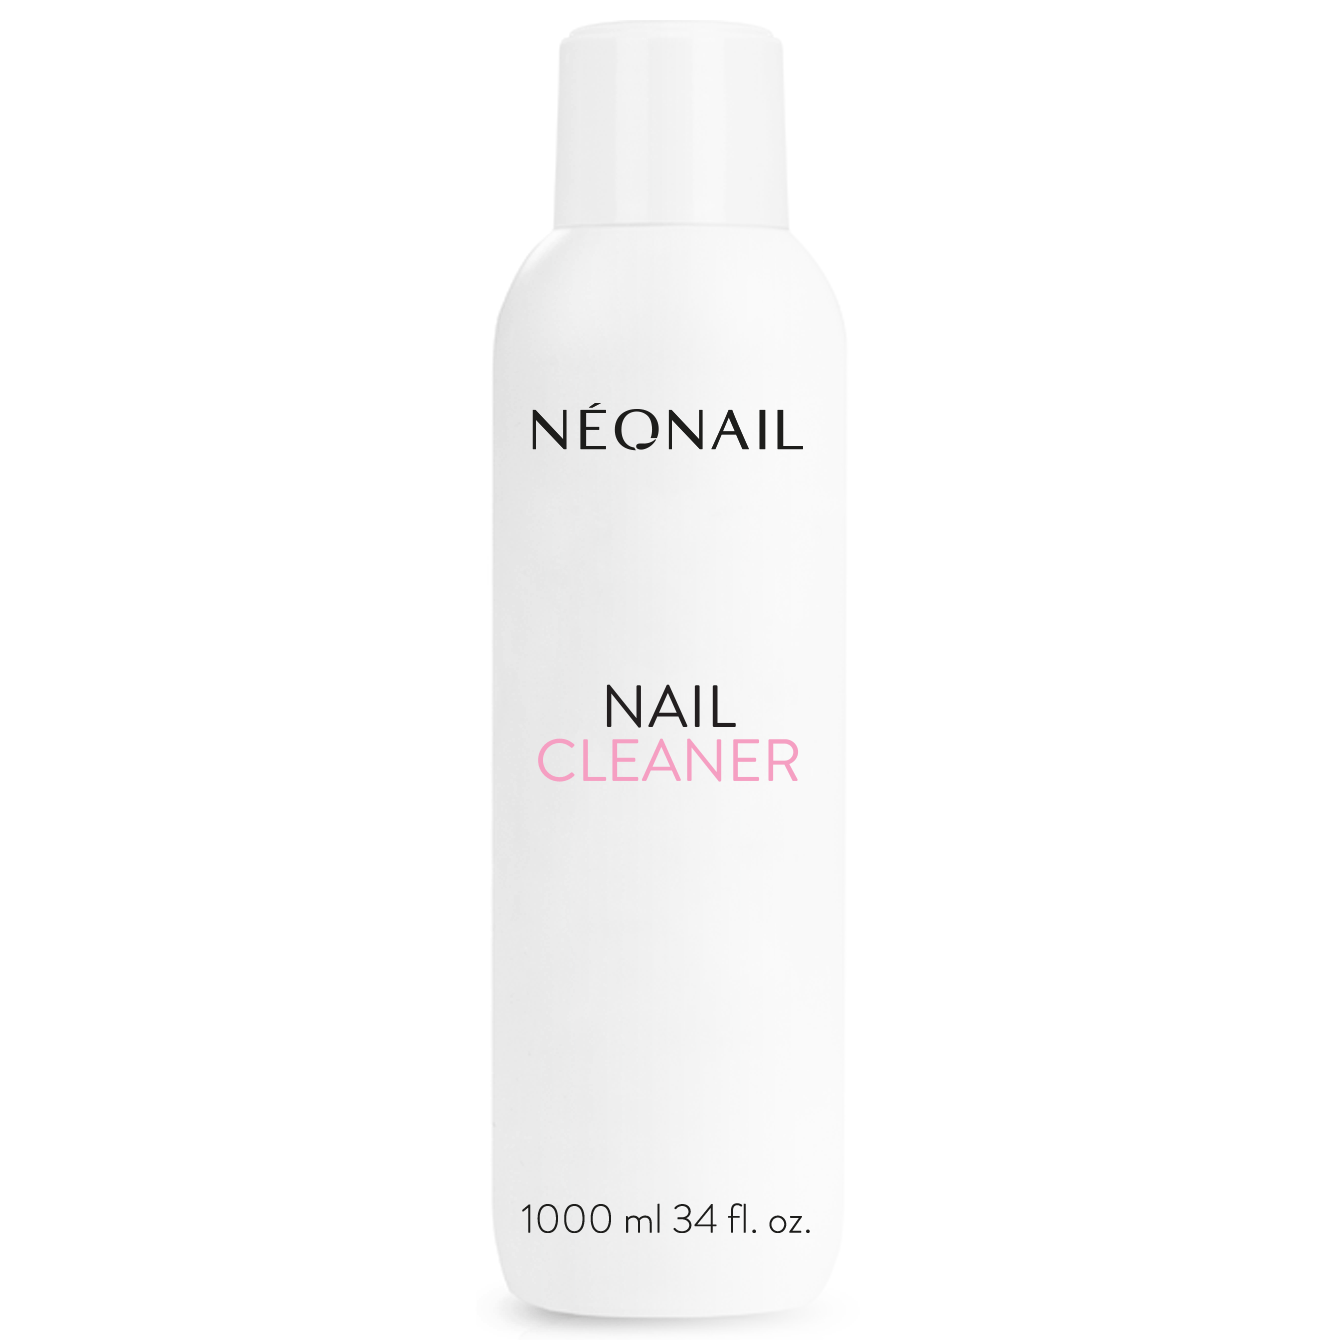 NeoNail Cleaner 1000 ml